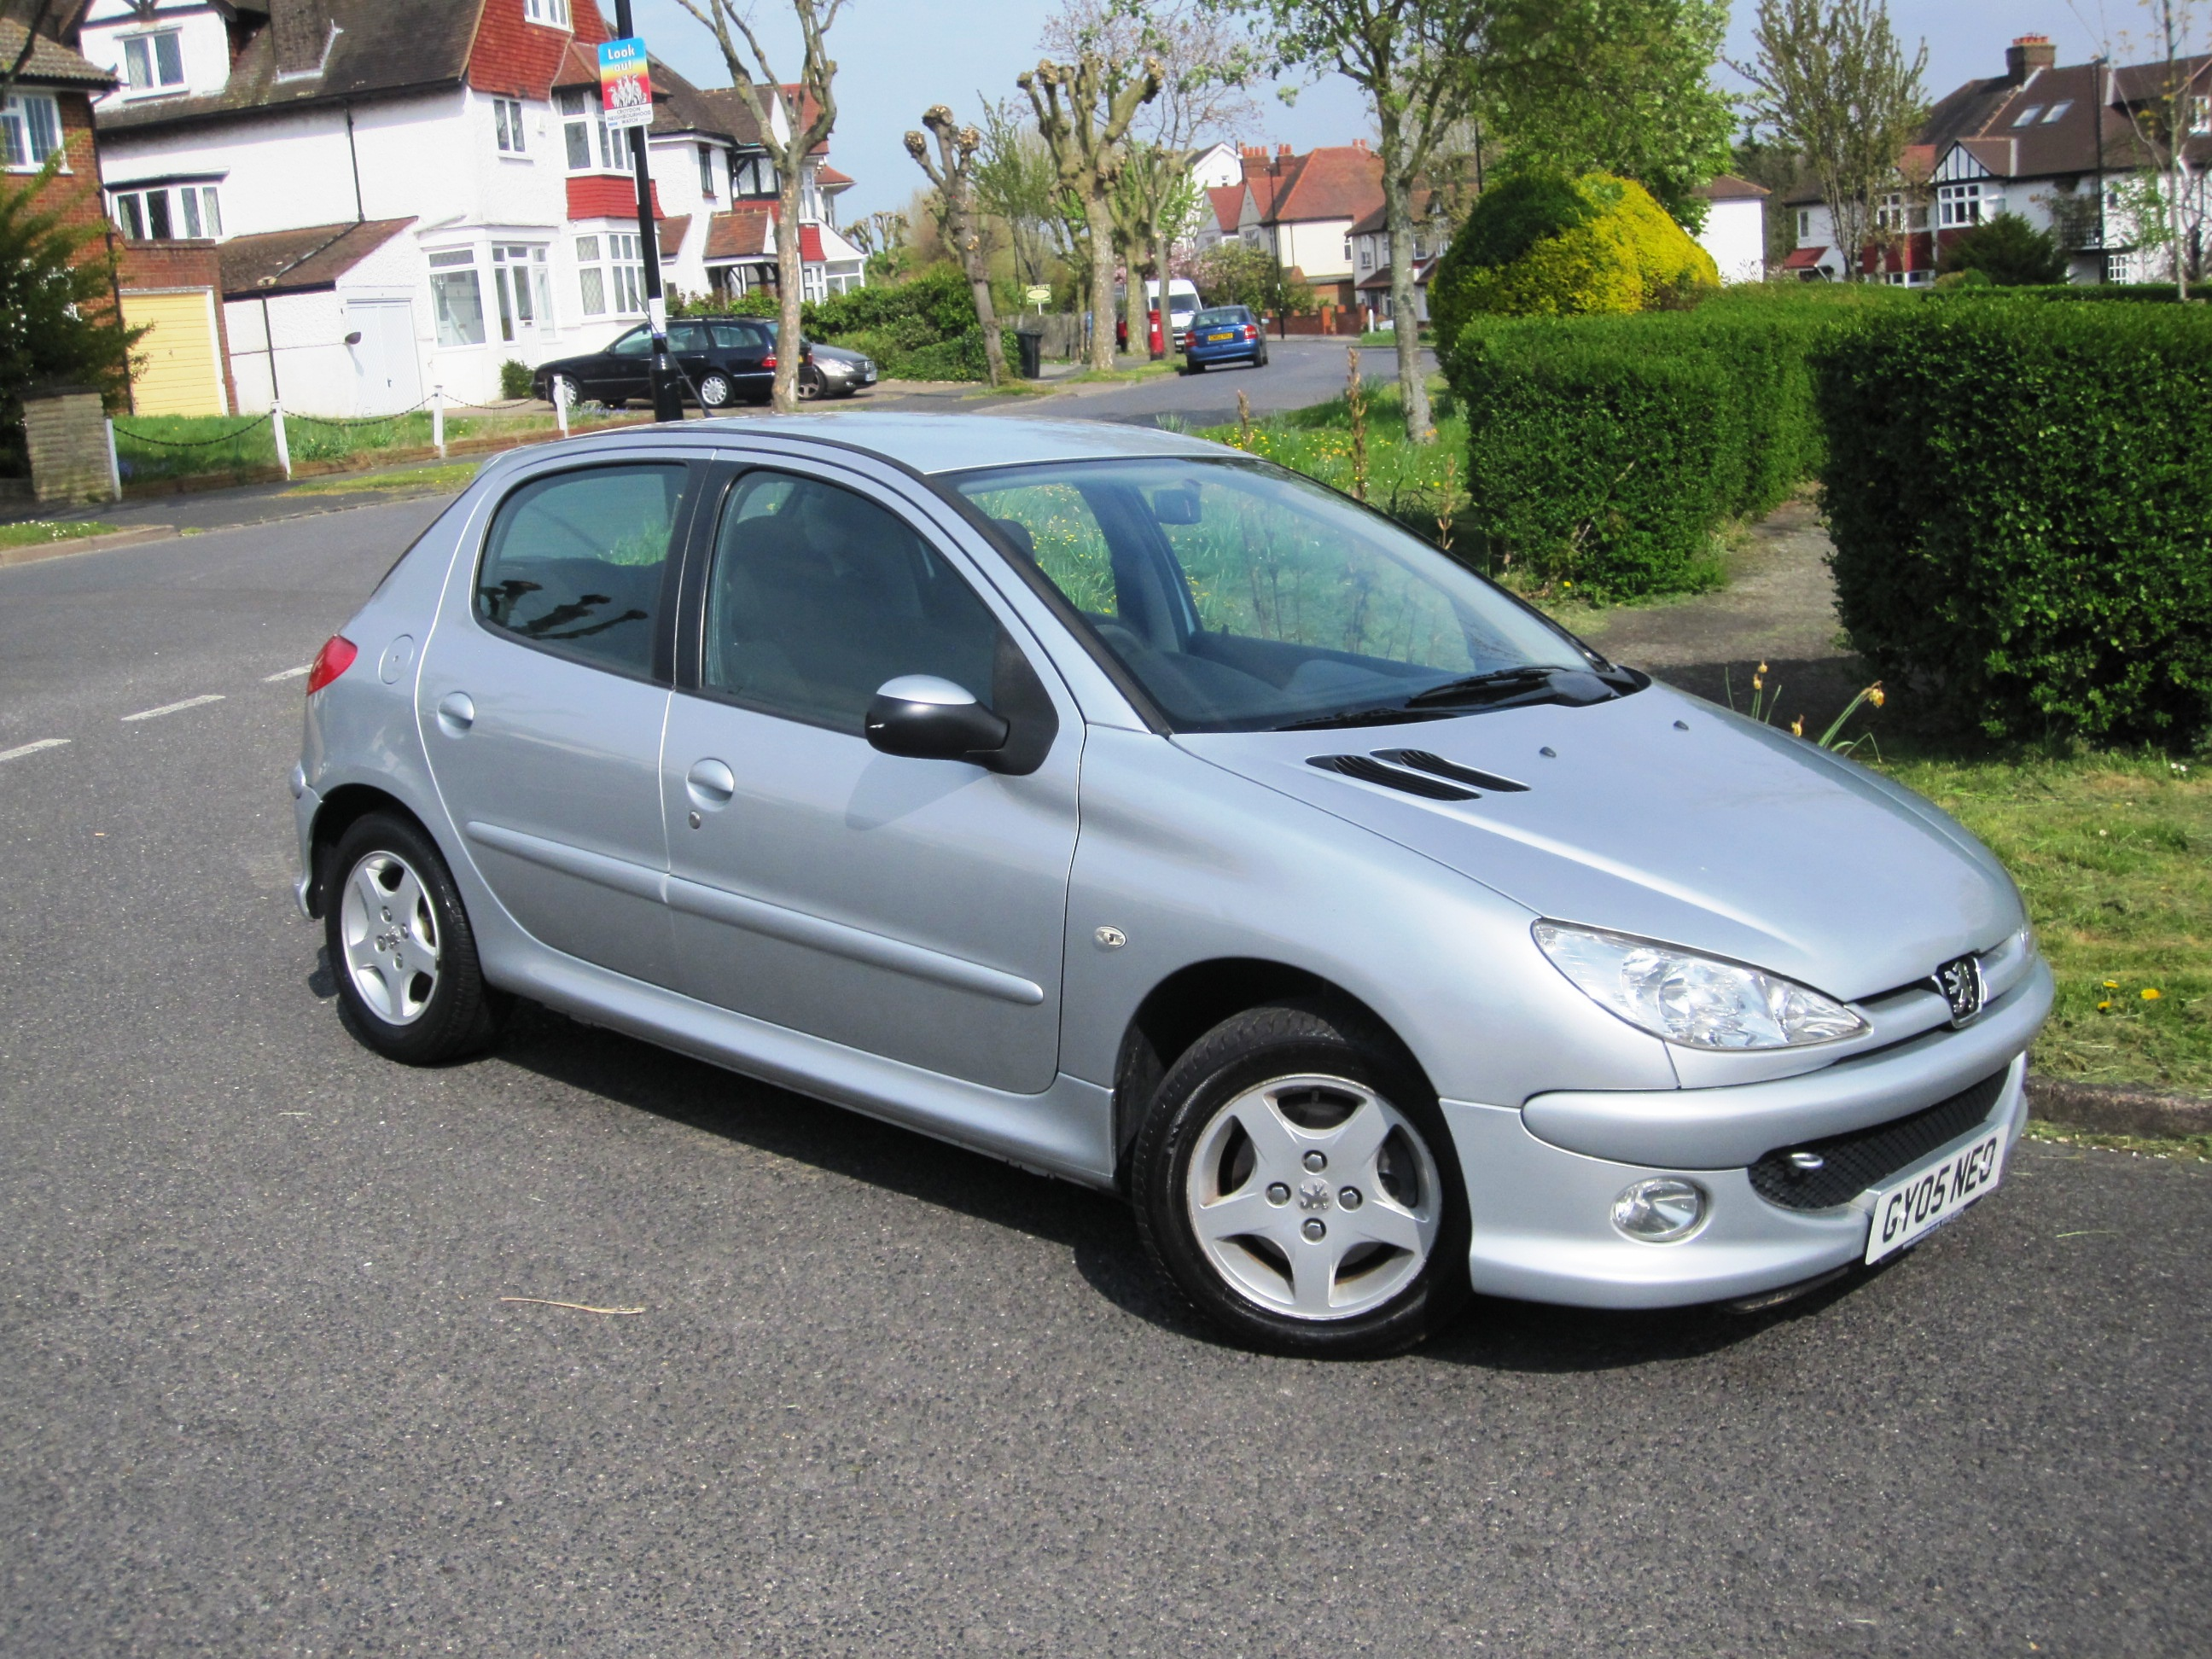 2016 Peugeot 206 Pictures Information And Specs Auto Database Com